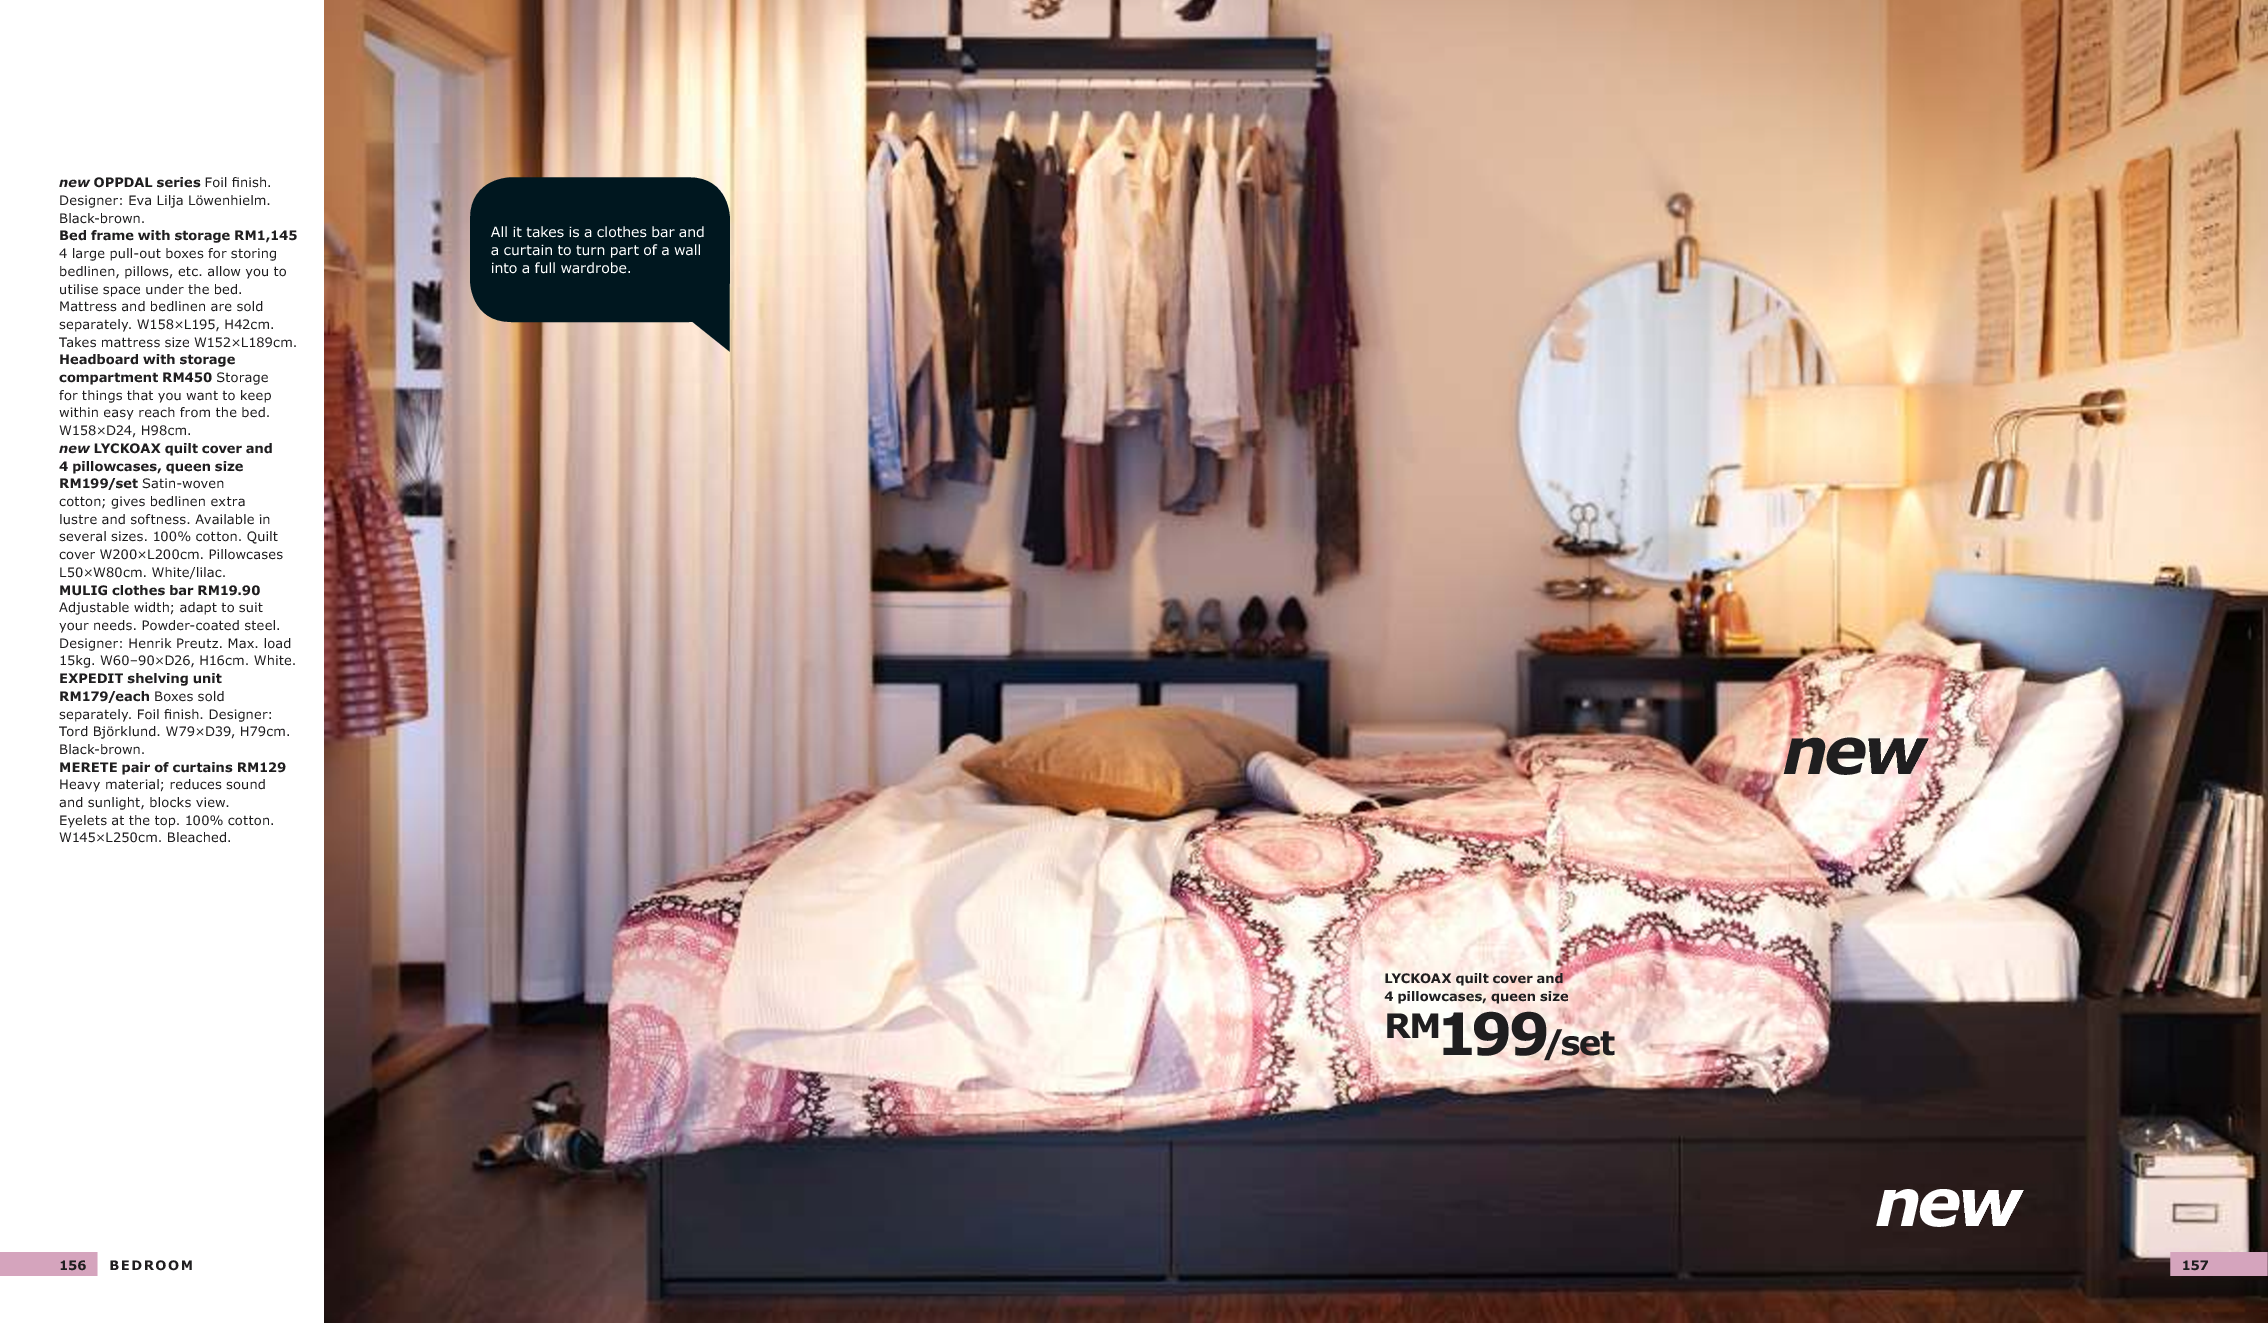 IKEA CATALOGUE 2012 (79) | Bedroom decor, Home, Home furnishings